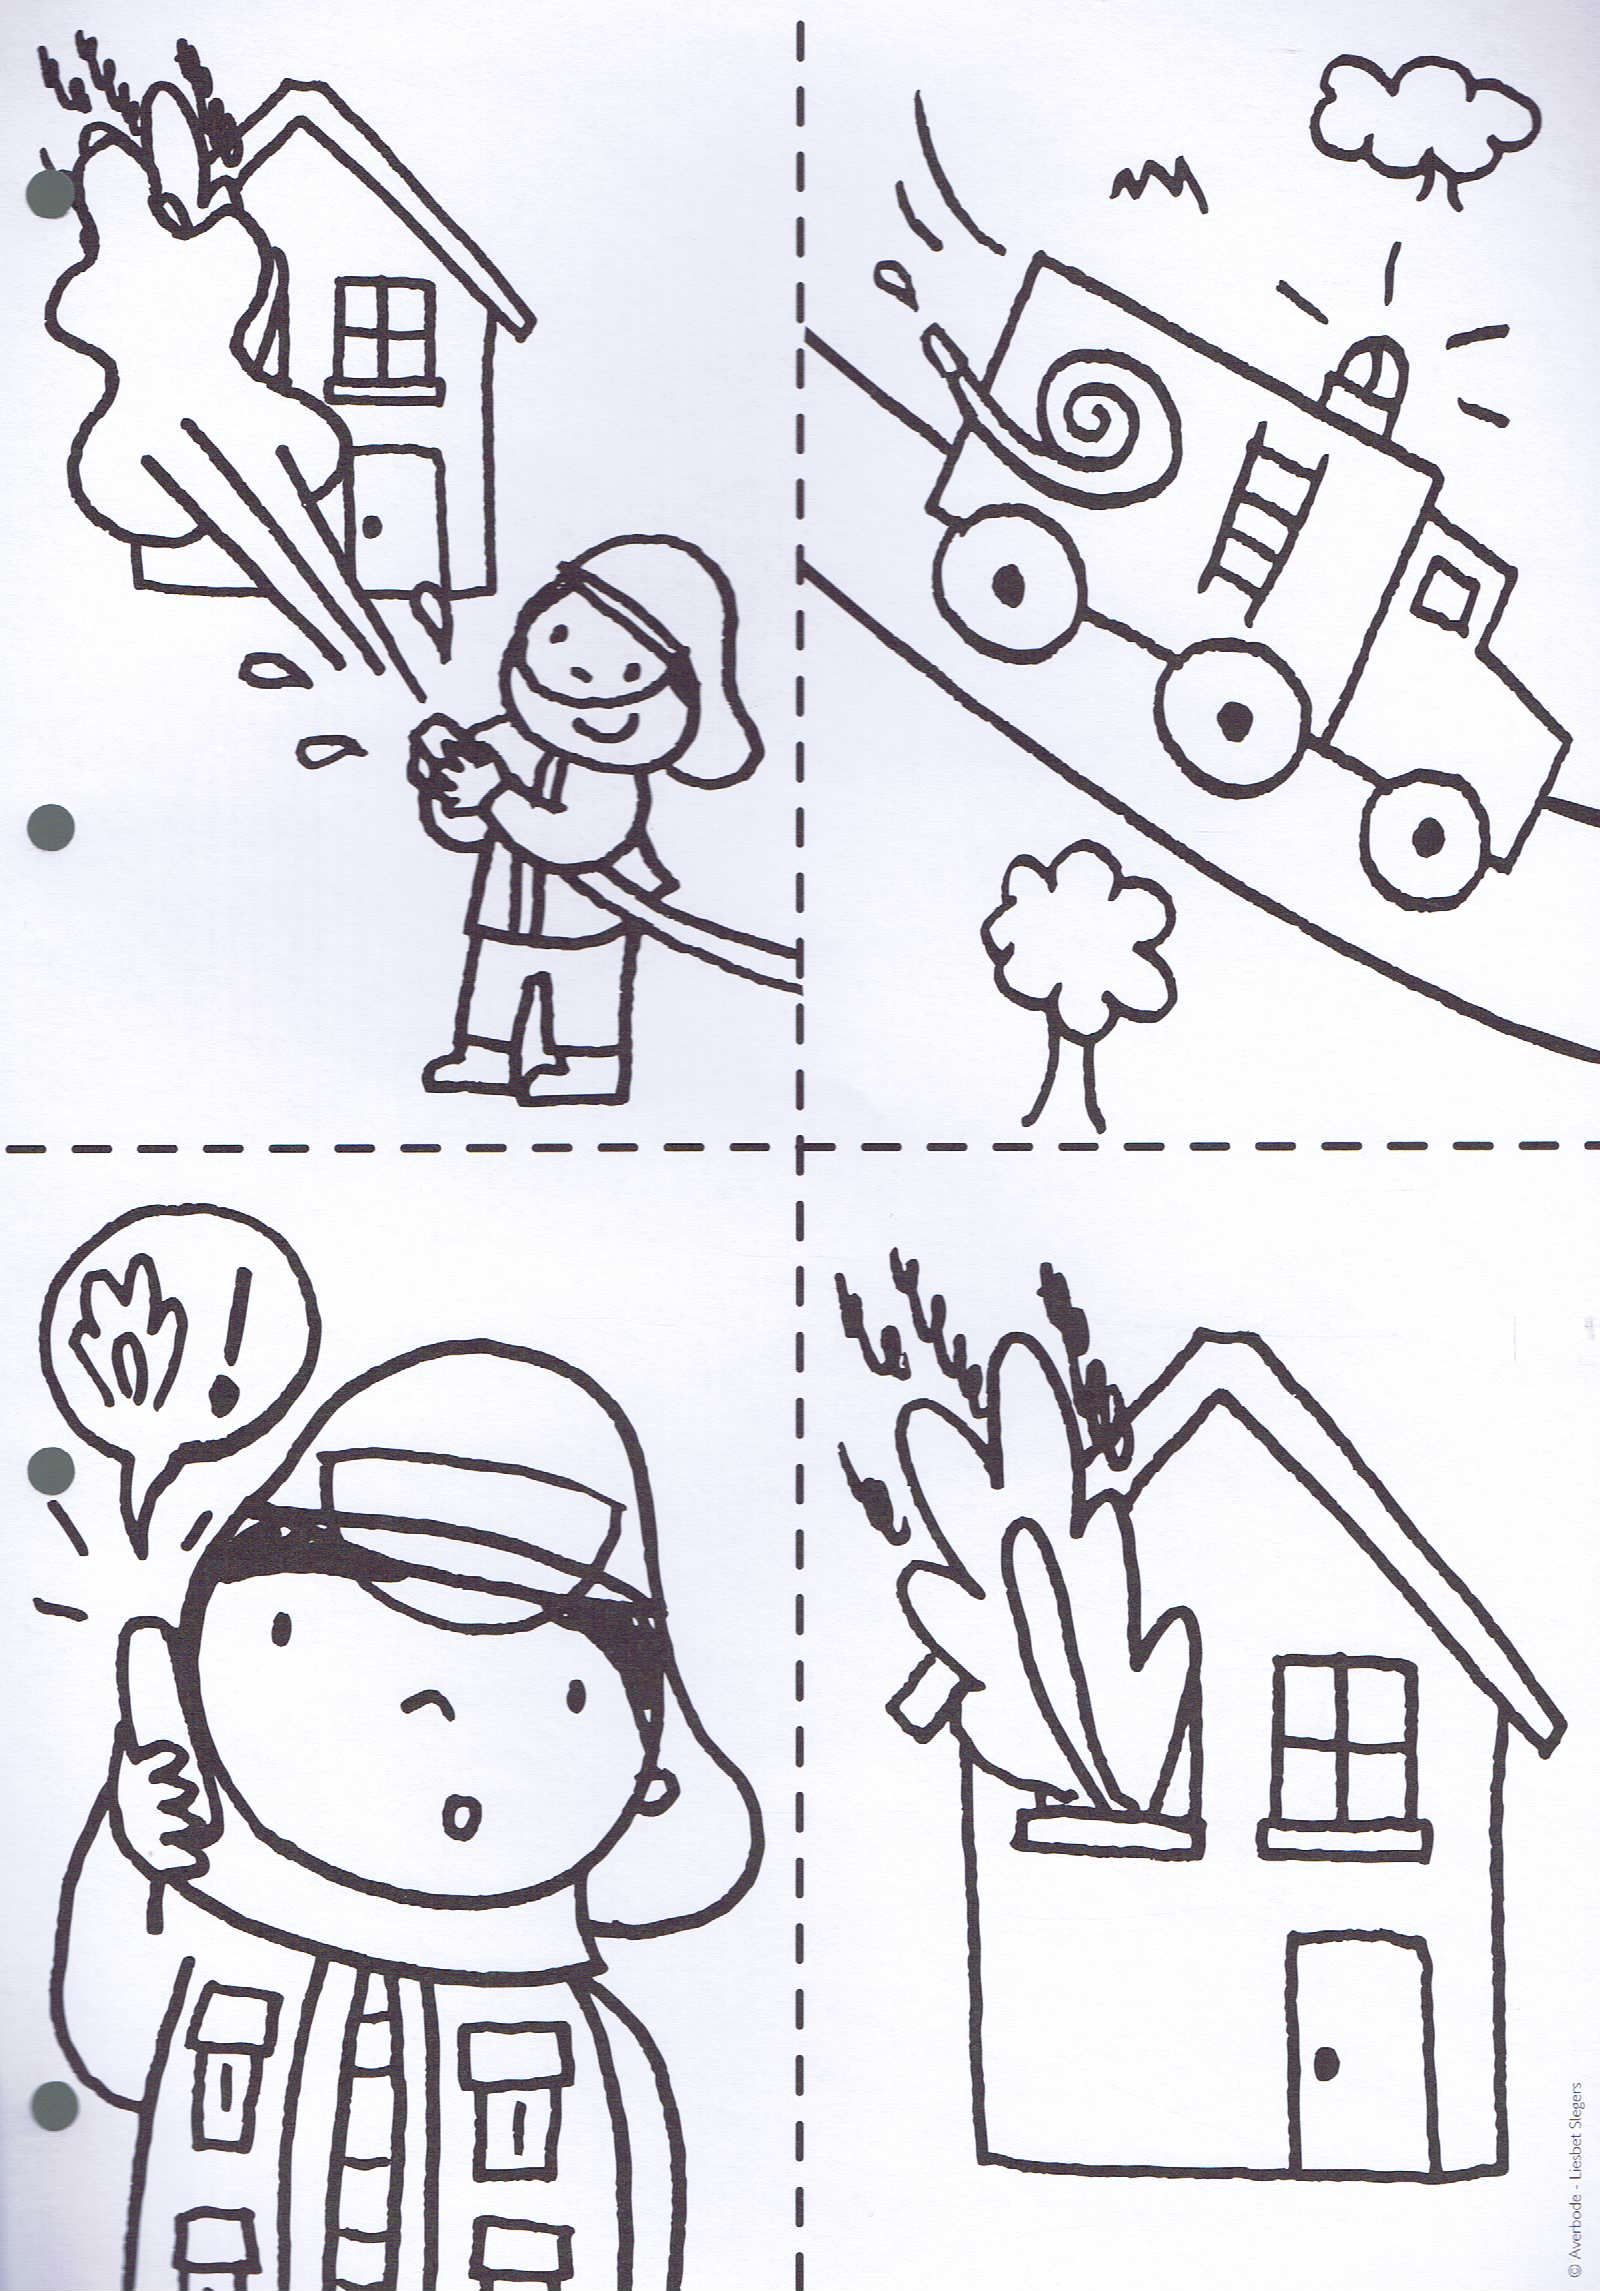 Worksheets Community Workers Worksheets pin by sandra gorissen on bc brandweer pinterest fire safety nursery worksheets fireman crafts sequencing pictures french class community helpers autism organisation homes